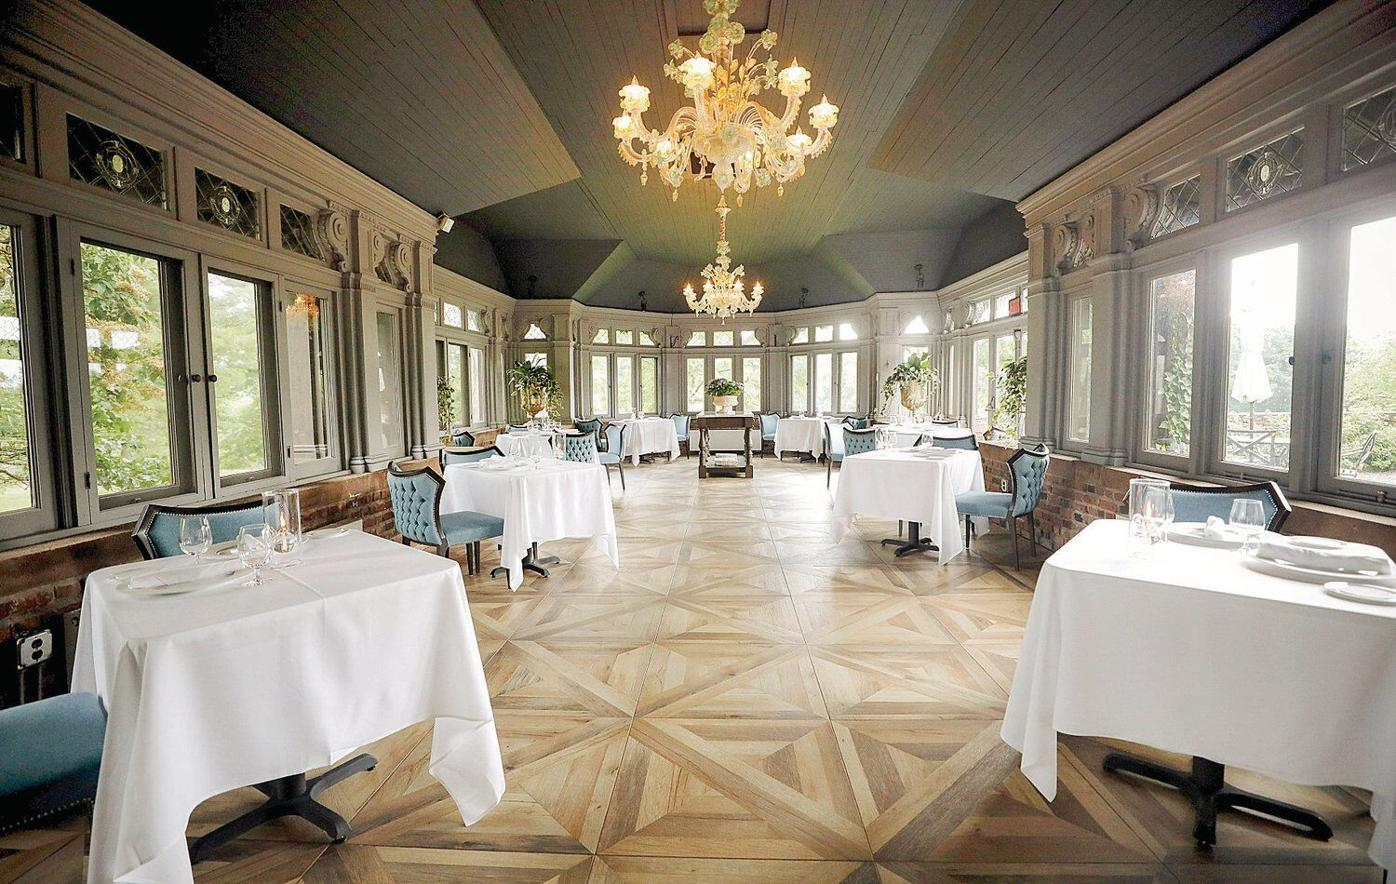 Michelin-starred chef Daniel Boulud opens pop-up restaurant at Blantyre